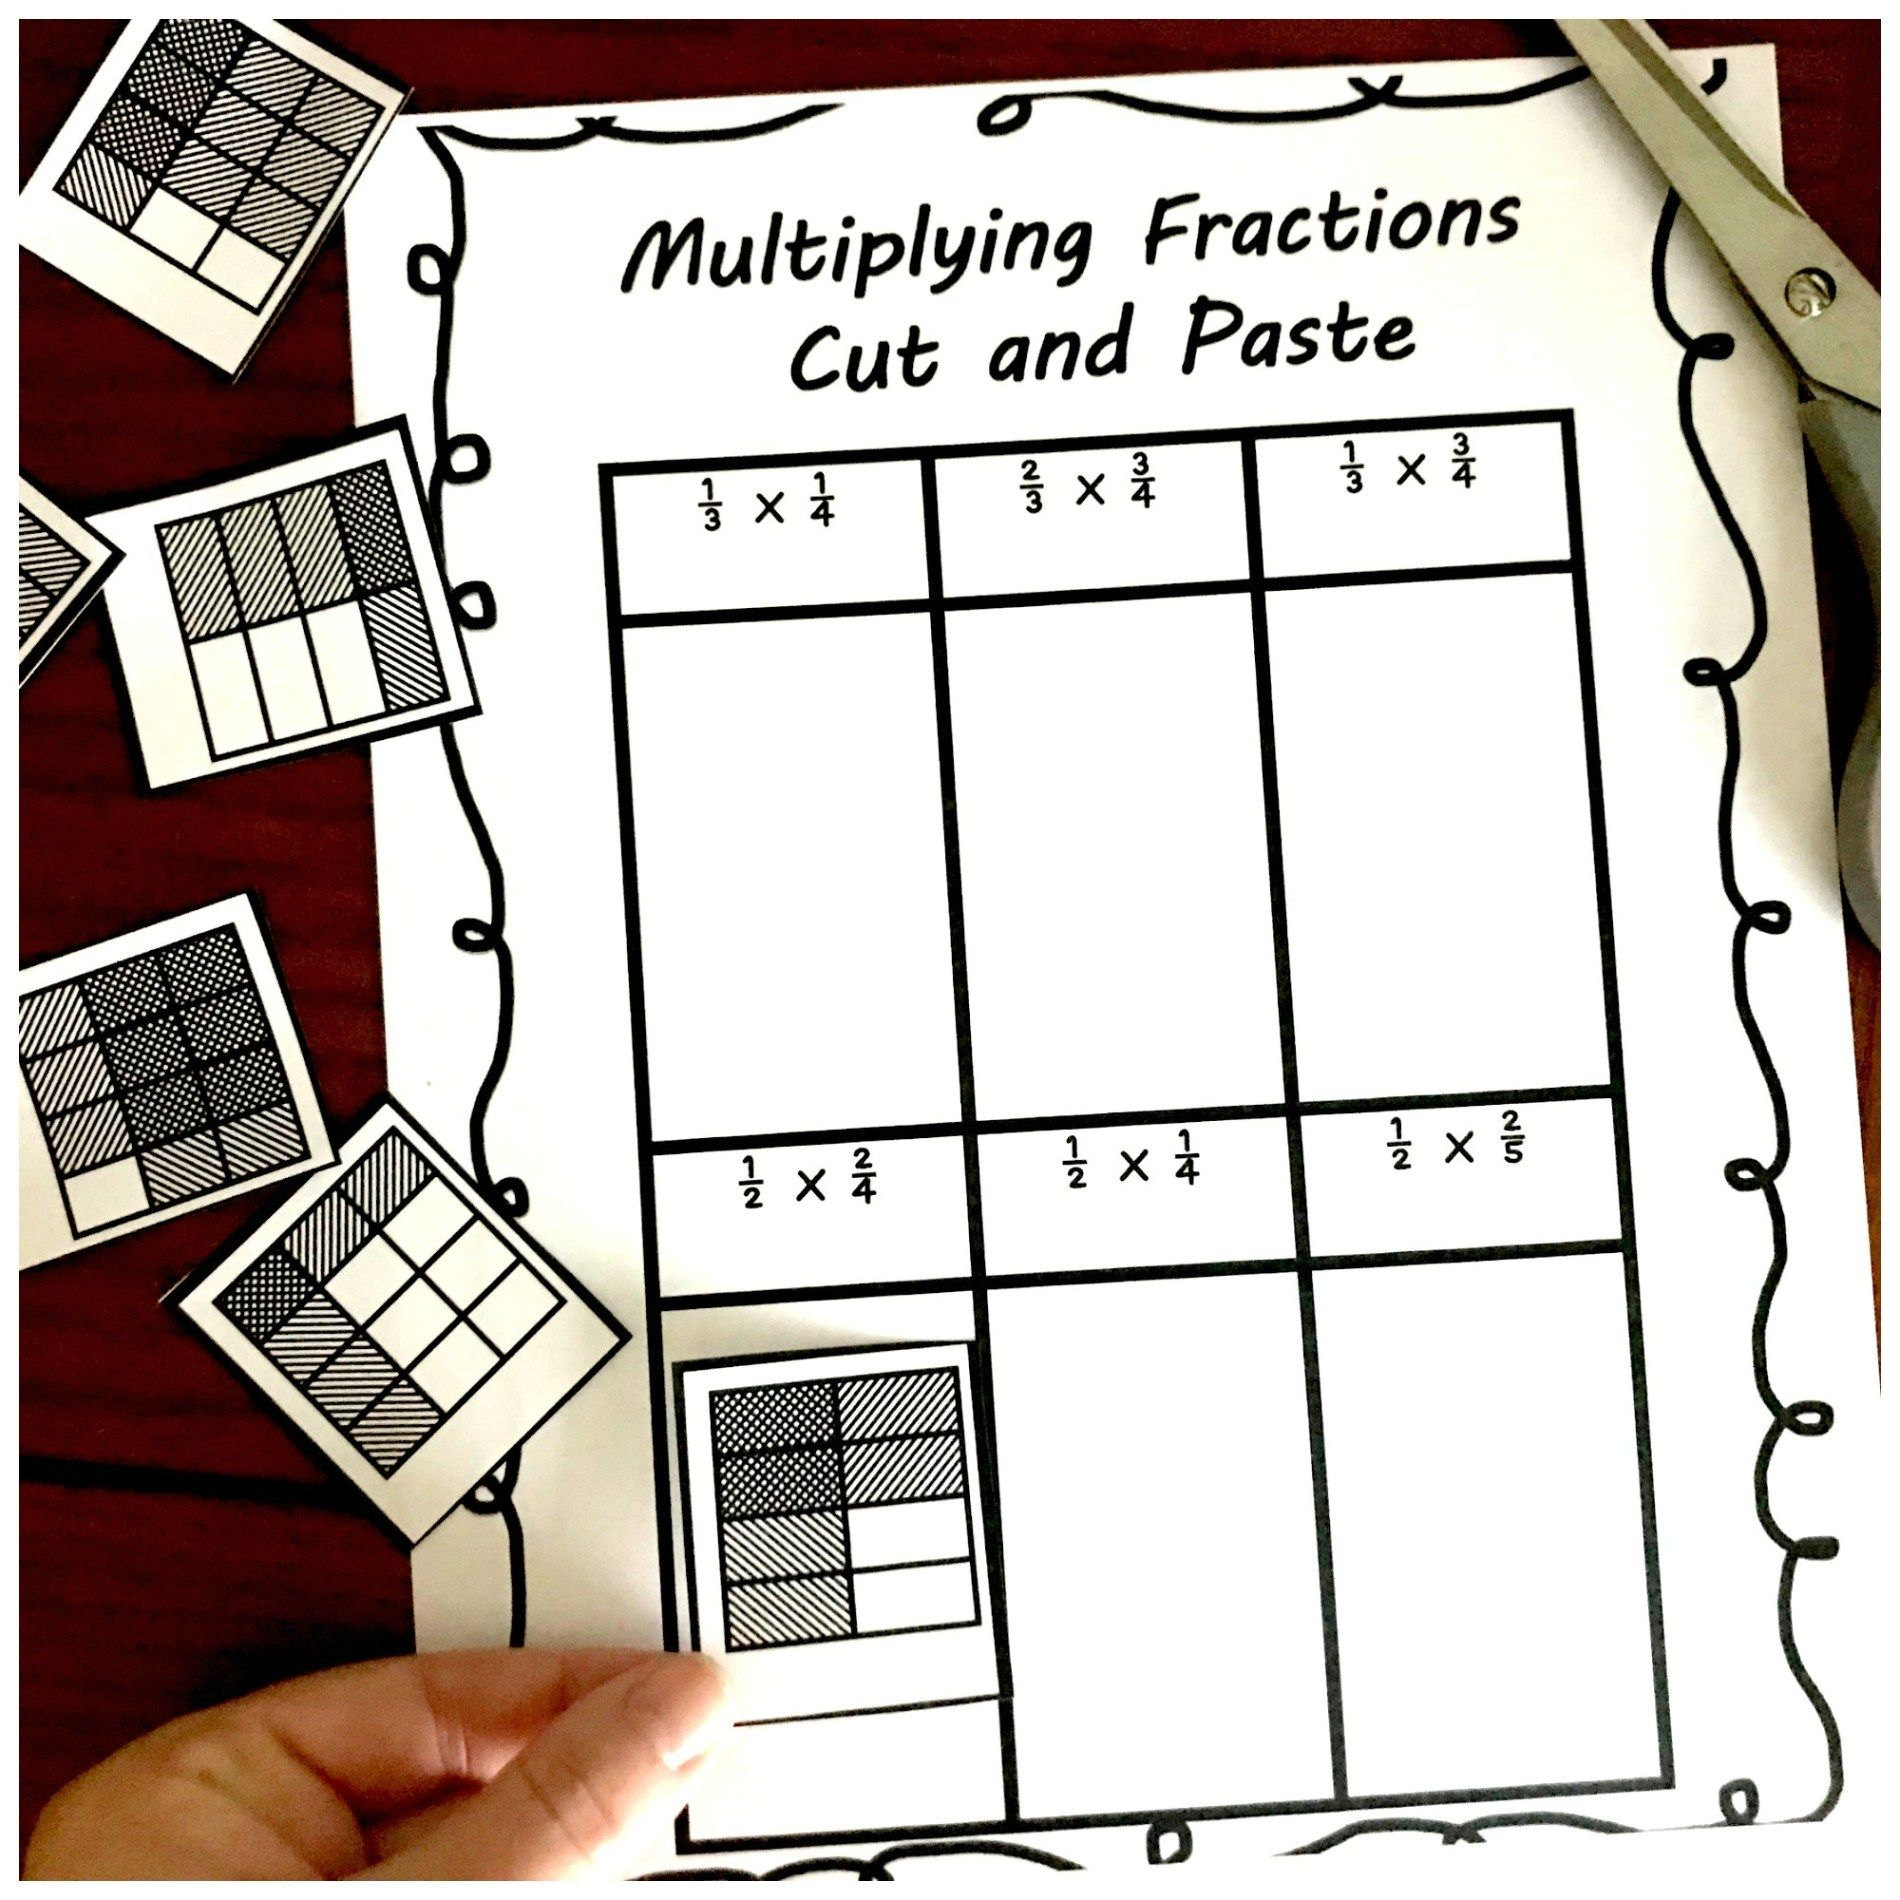 3 Cut And Paste Worksheets For Multiplying Fractions